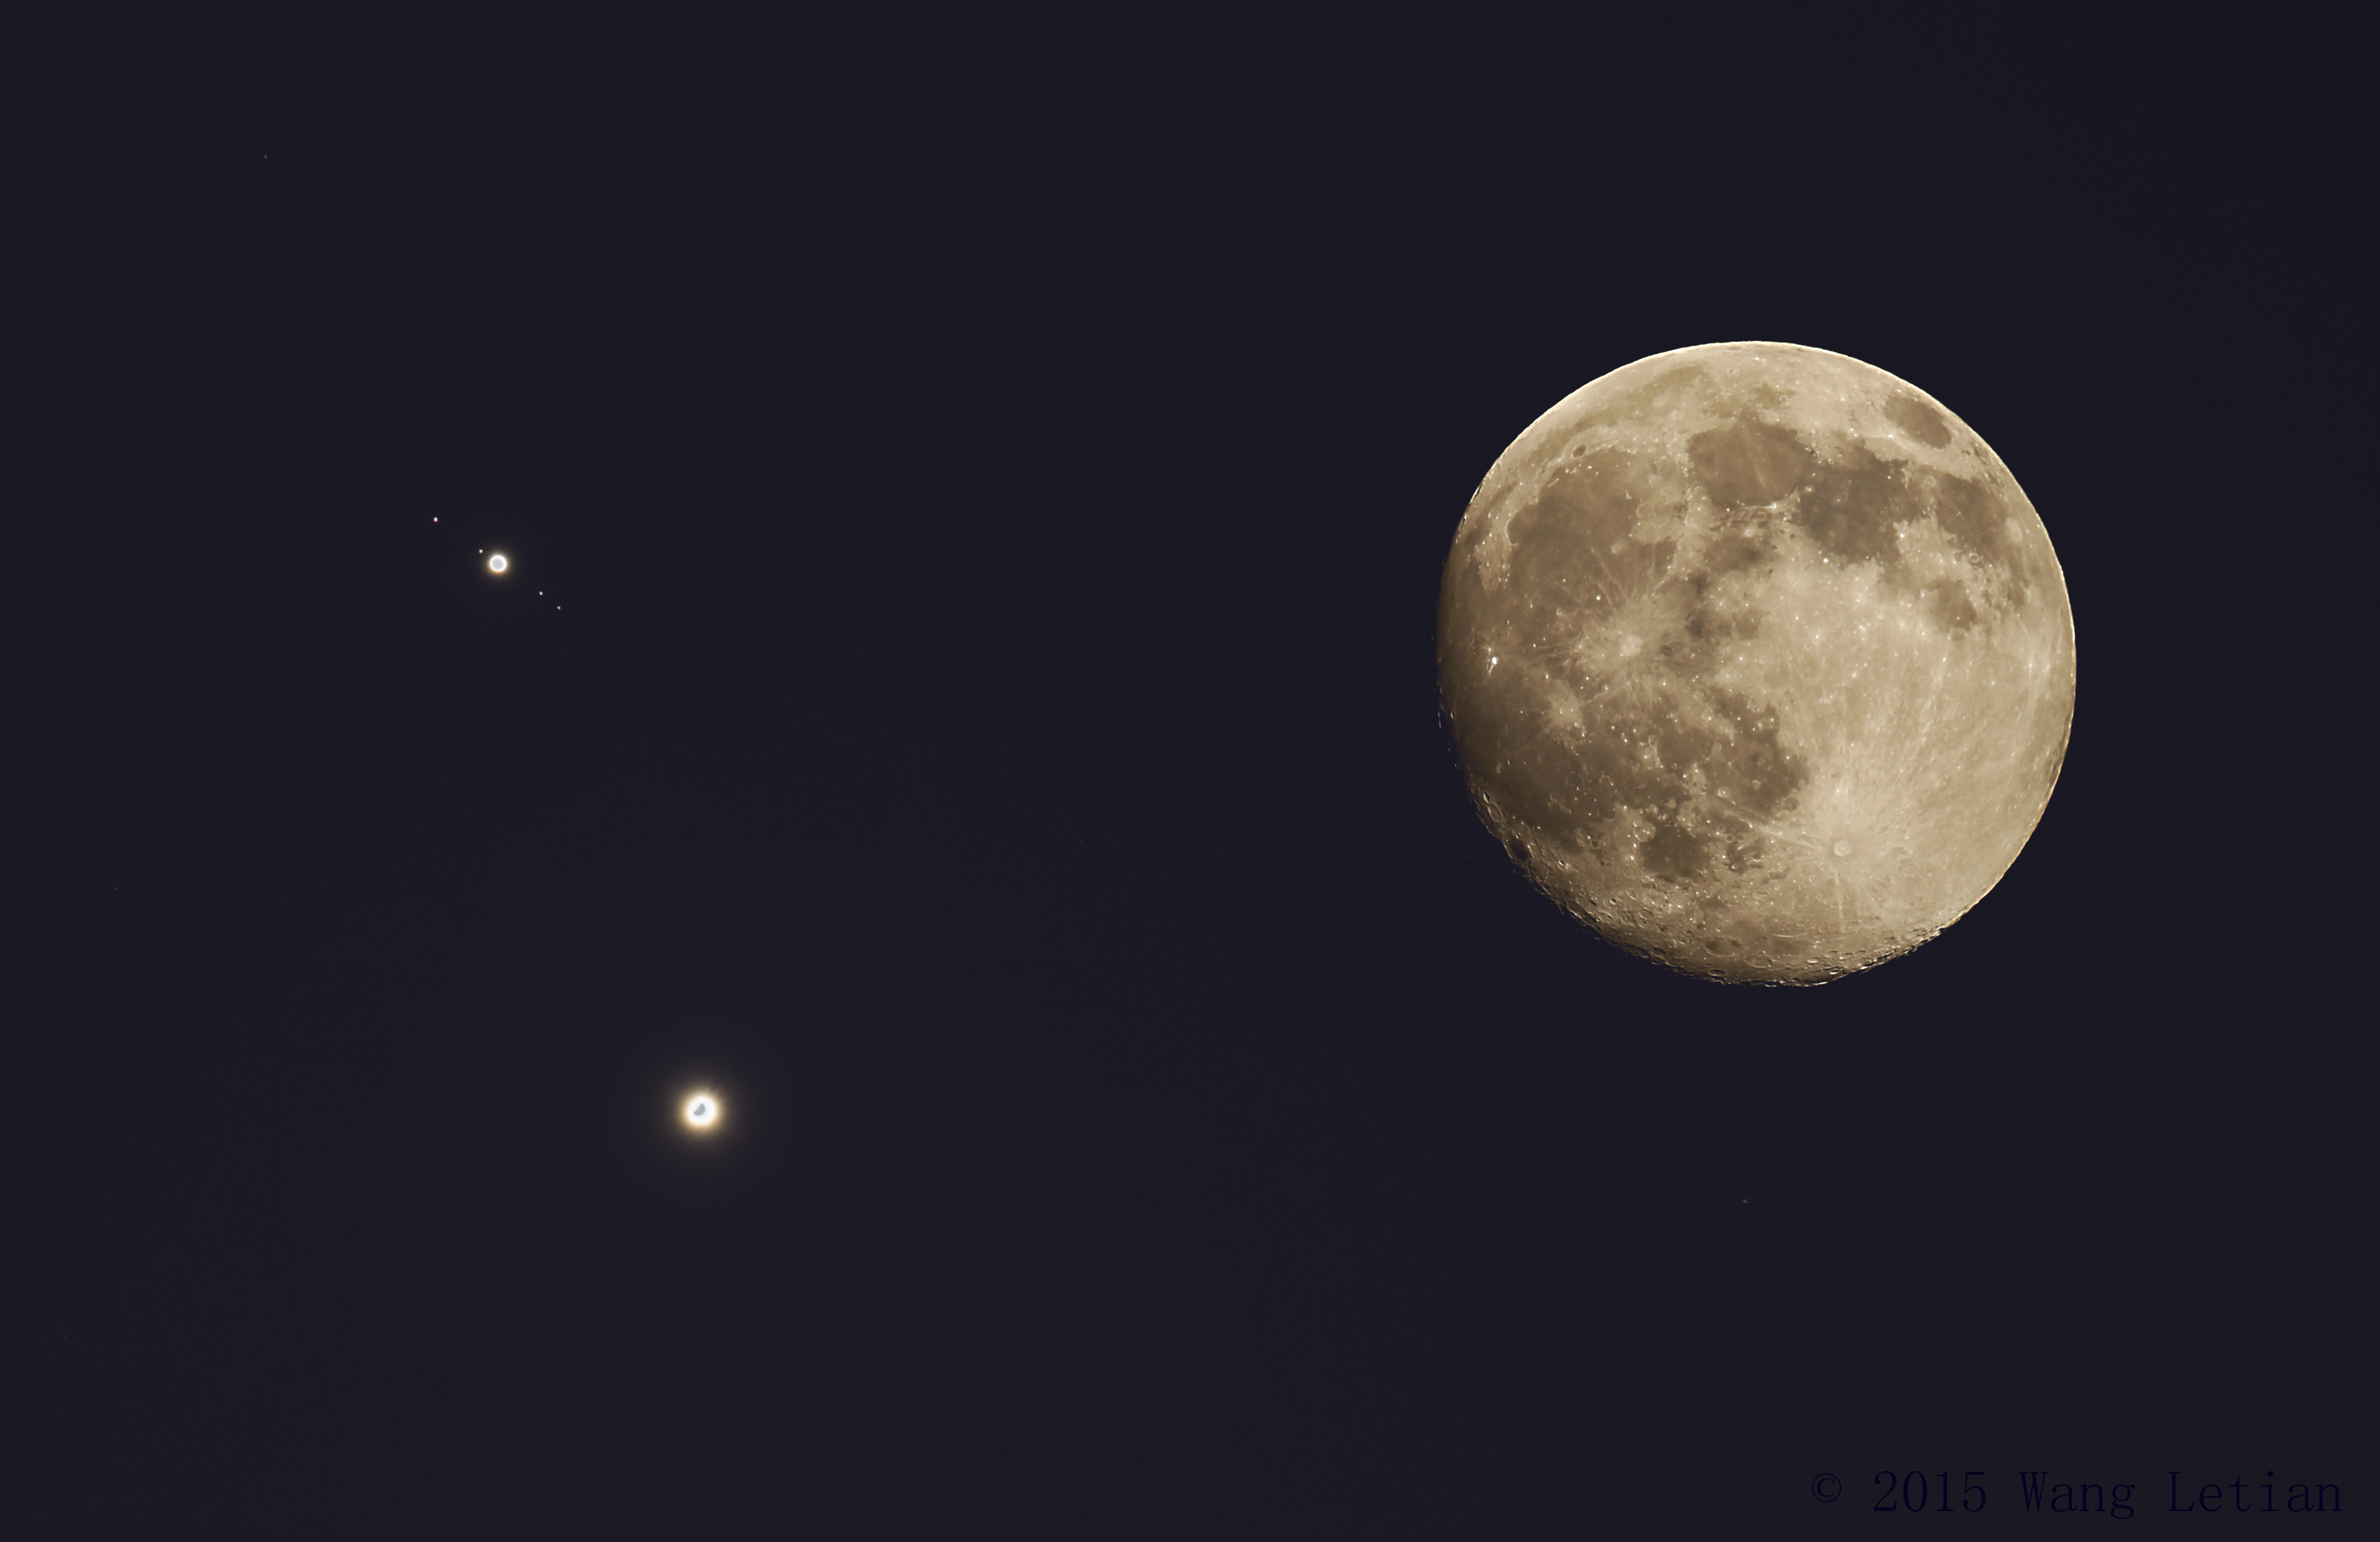 APOD: 2015 July 2 - Venus and Jupiter are Close